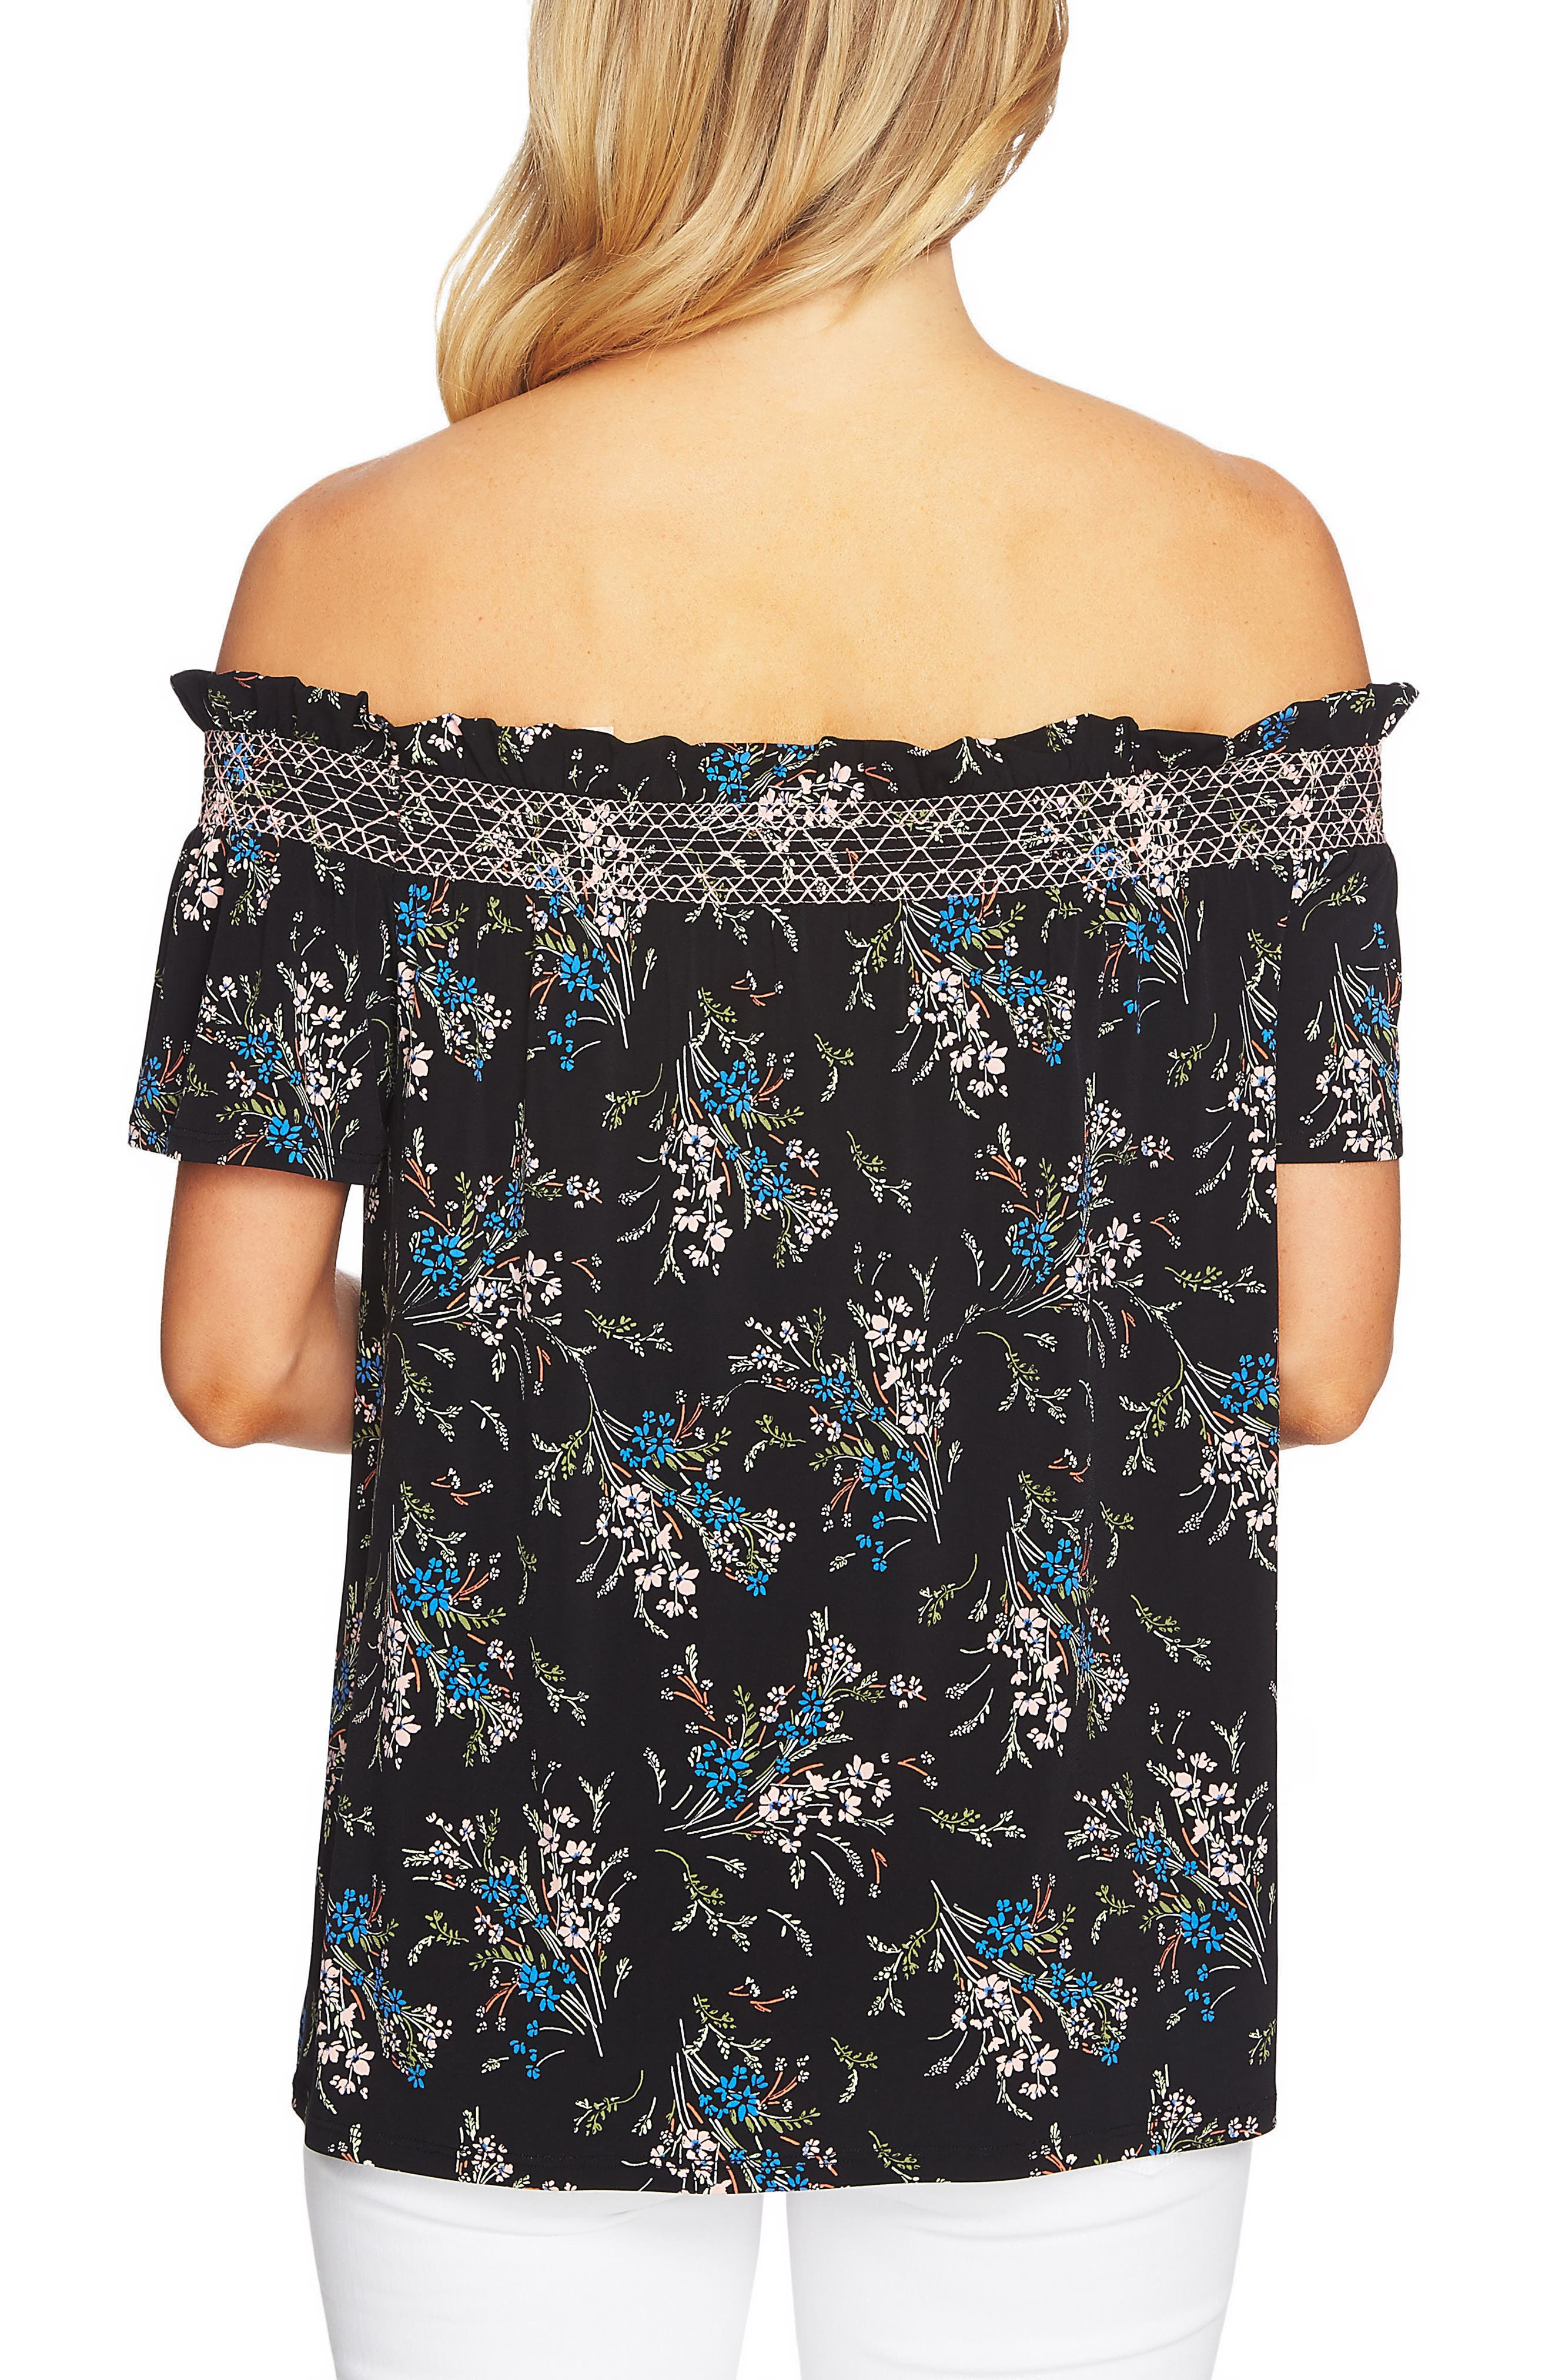 Off the Shoulder Dancing Top,                             Alternate thumbnail 2, color,                             006